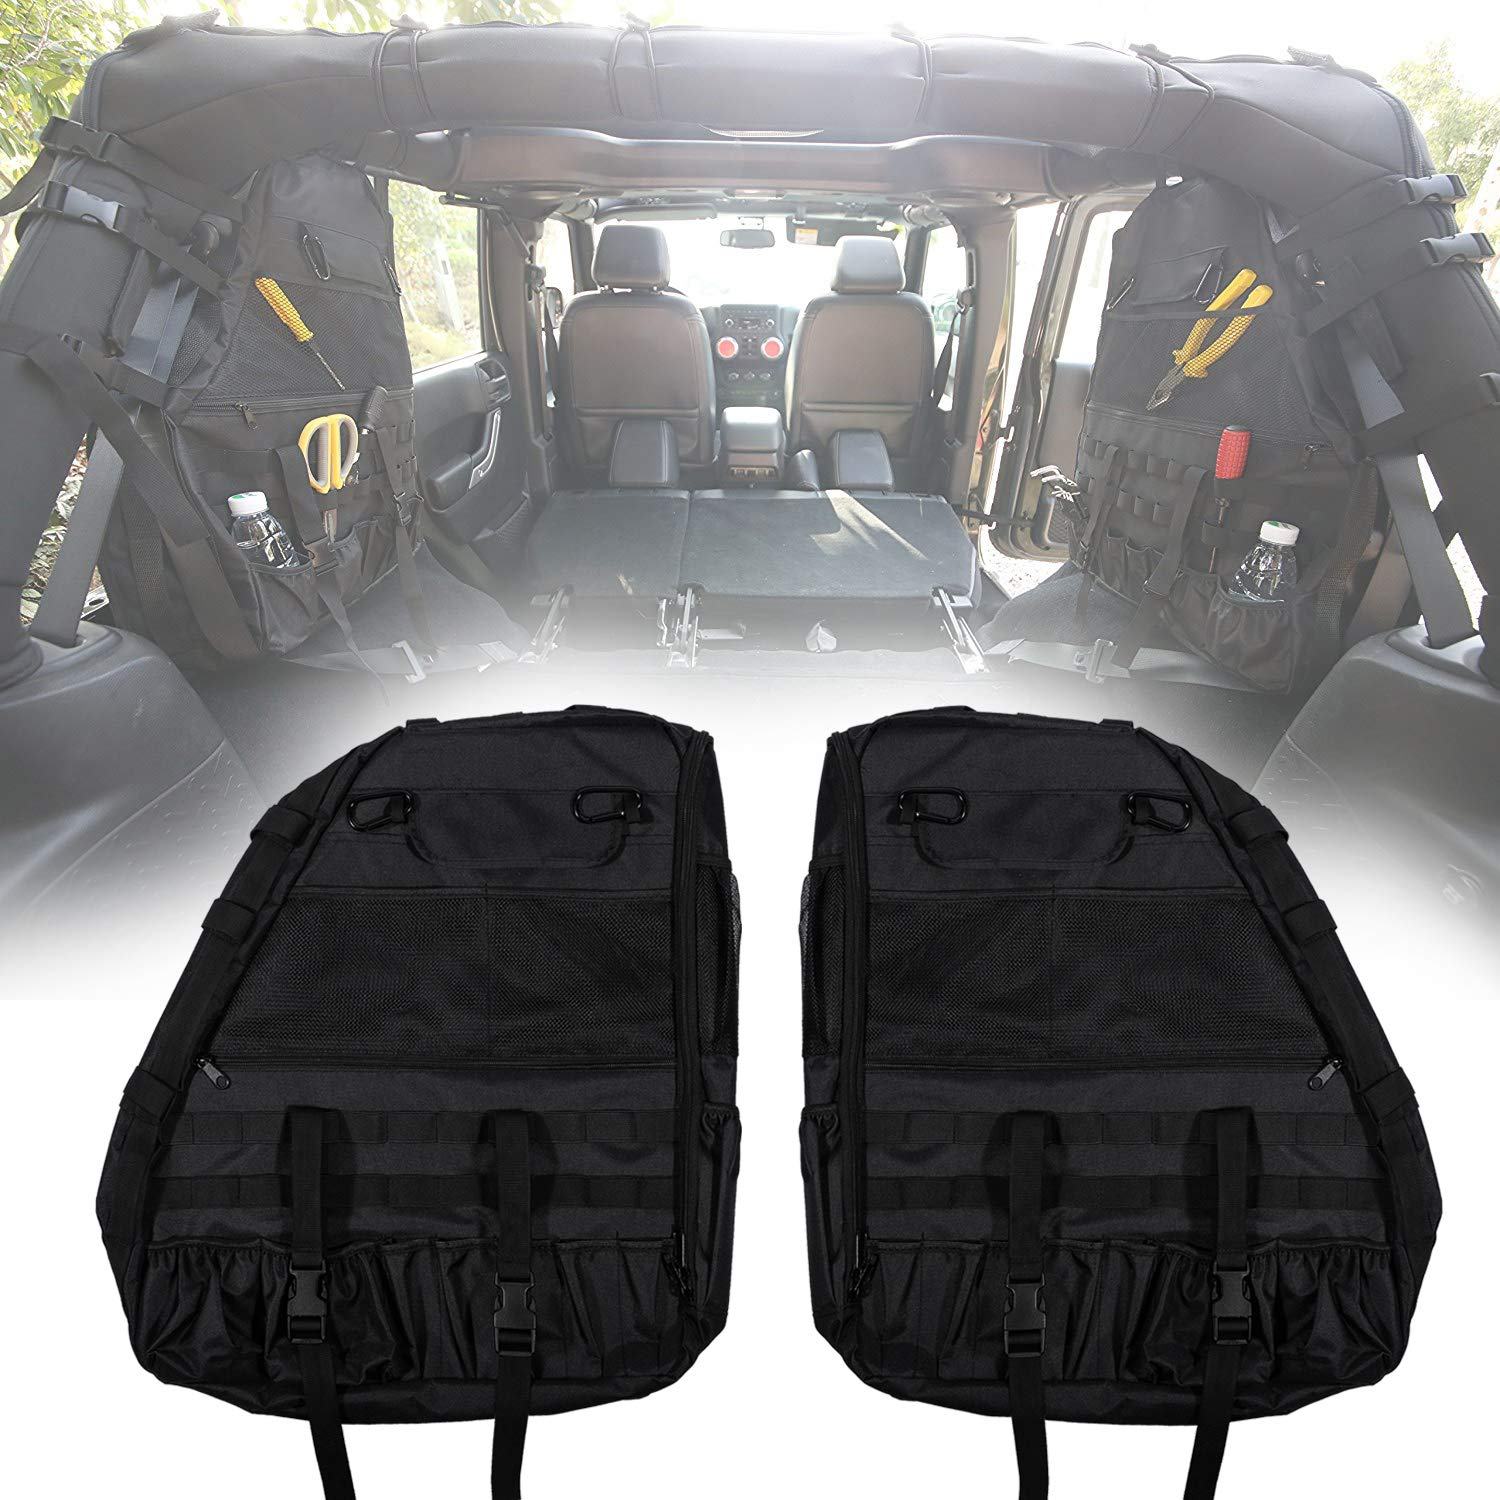 Roll Bar Storage Bag Cage with Multi-Pockets & Organizers & Cargo Bag Tool Kits for Jeep Wrangler JK JL TJ LJ & Unlimited 4-Door 1997-2018 by Danti